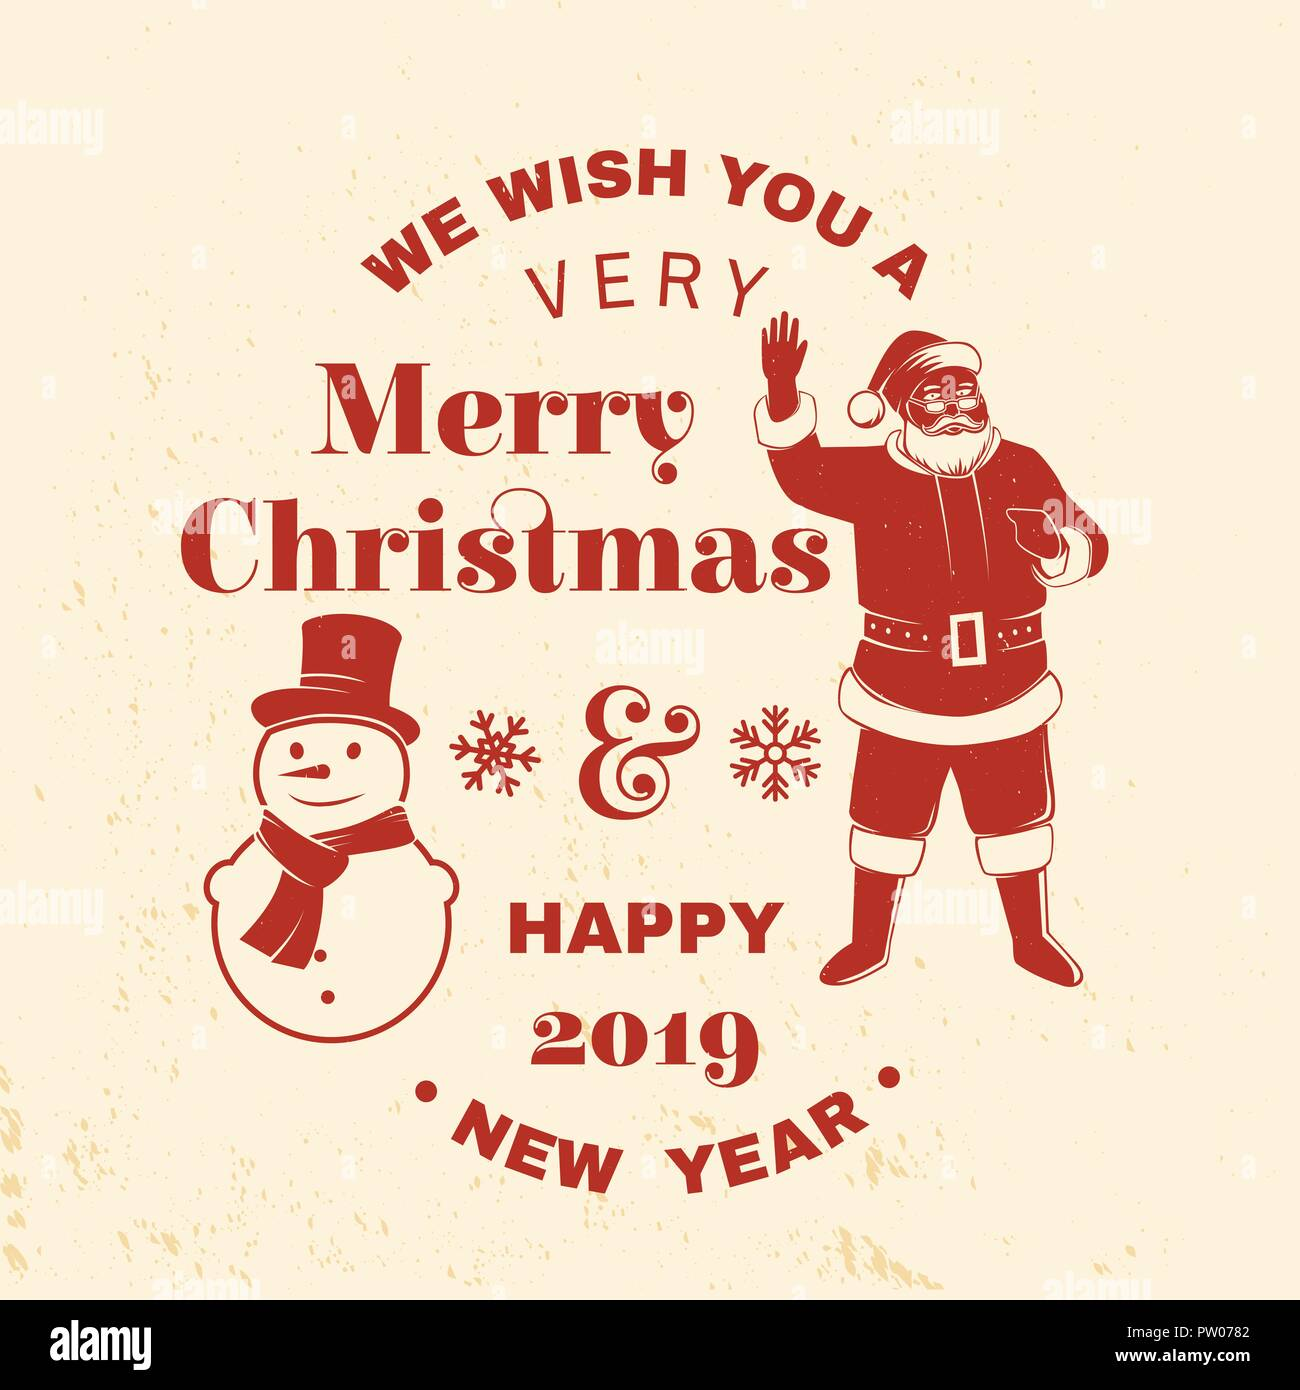 We wish you a very Merry Christmas and Happy New Year stamp, sticker ...